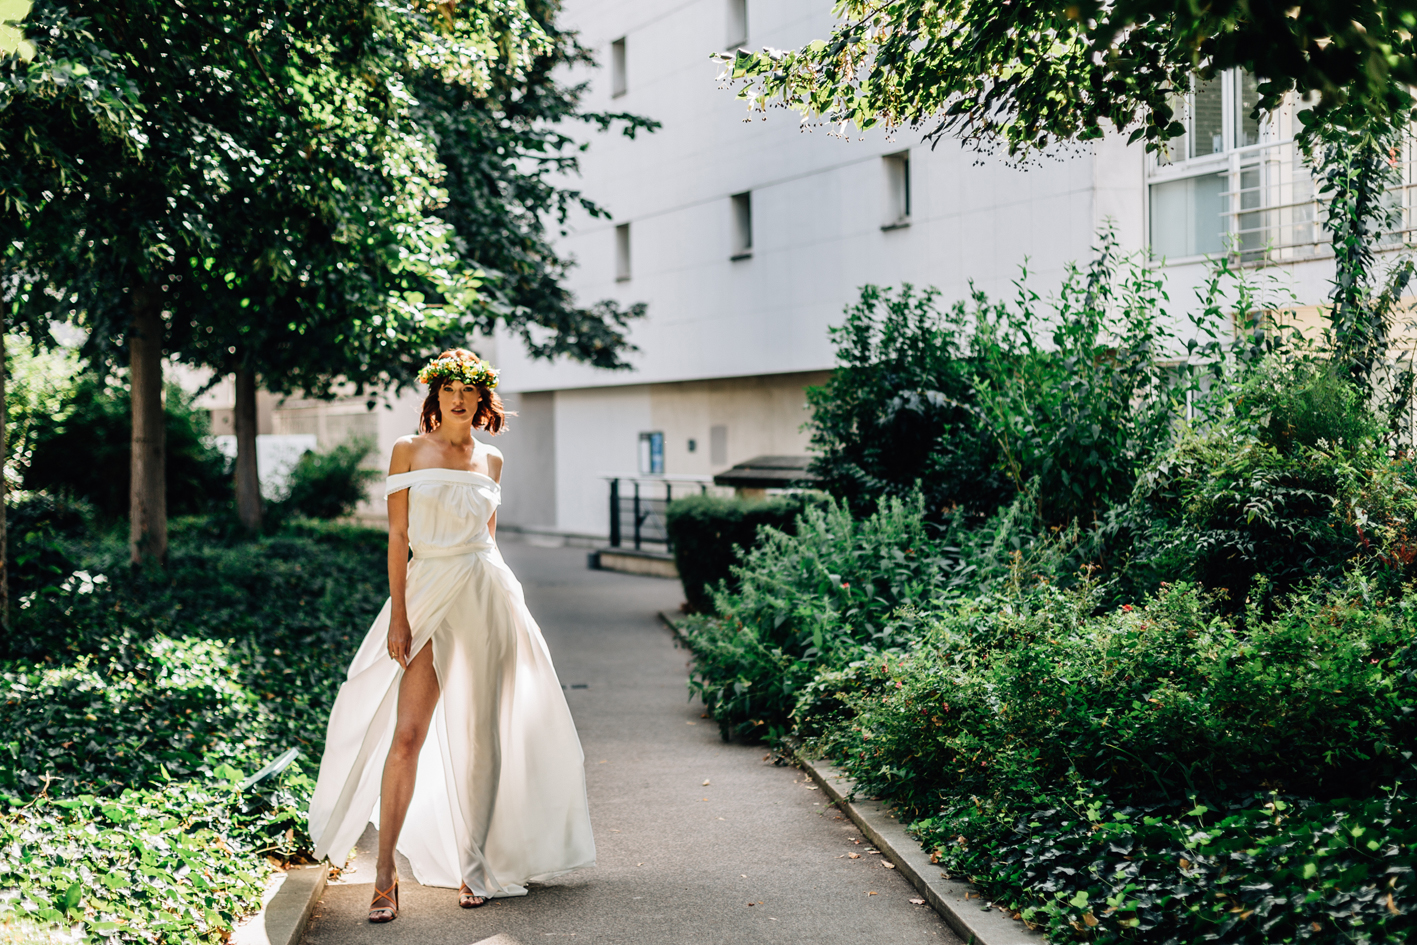 Pierre Atelier / wedding photographer Paris / photographe mariage / wedding planner